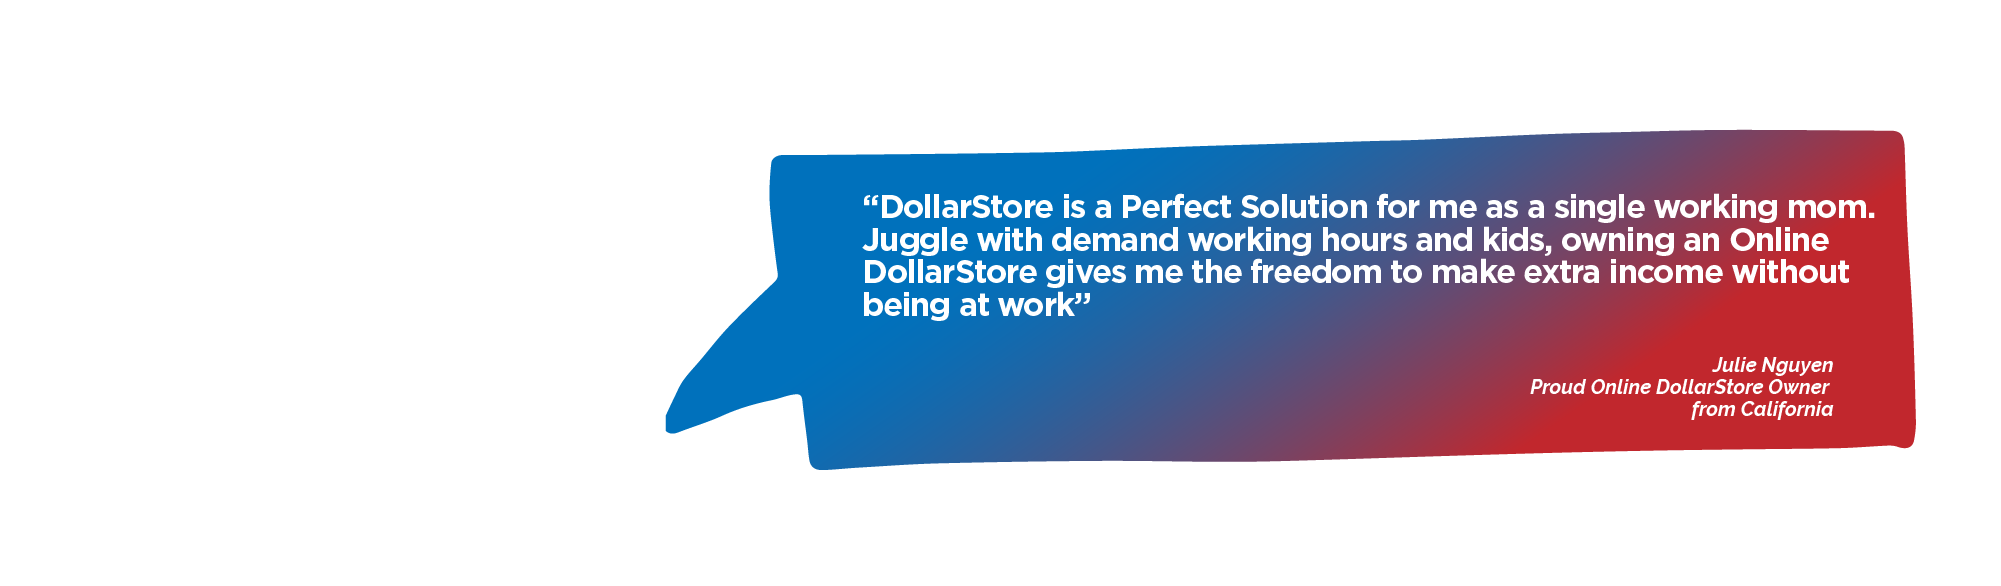 Review Julie Nguyen at the DollarStore